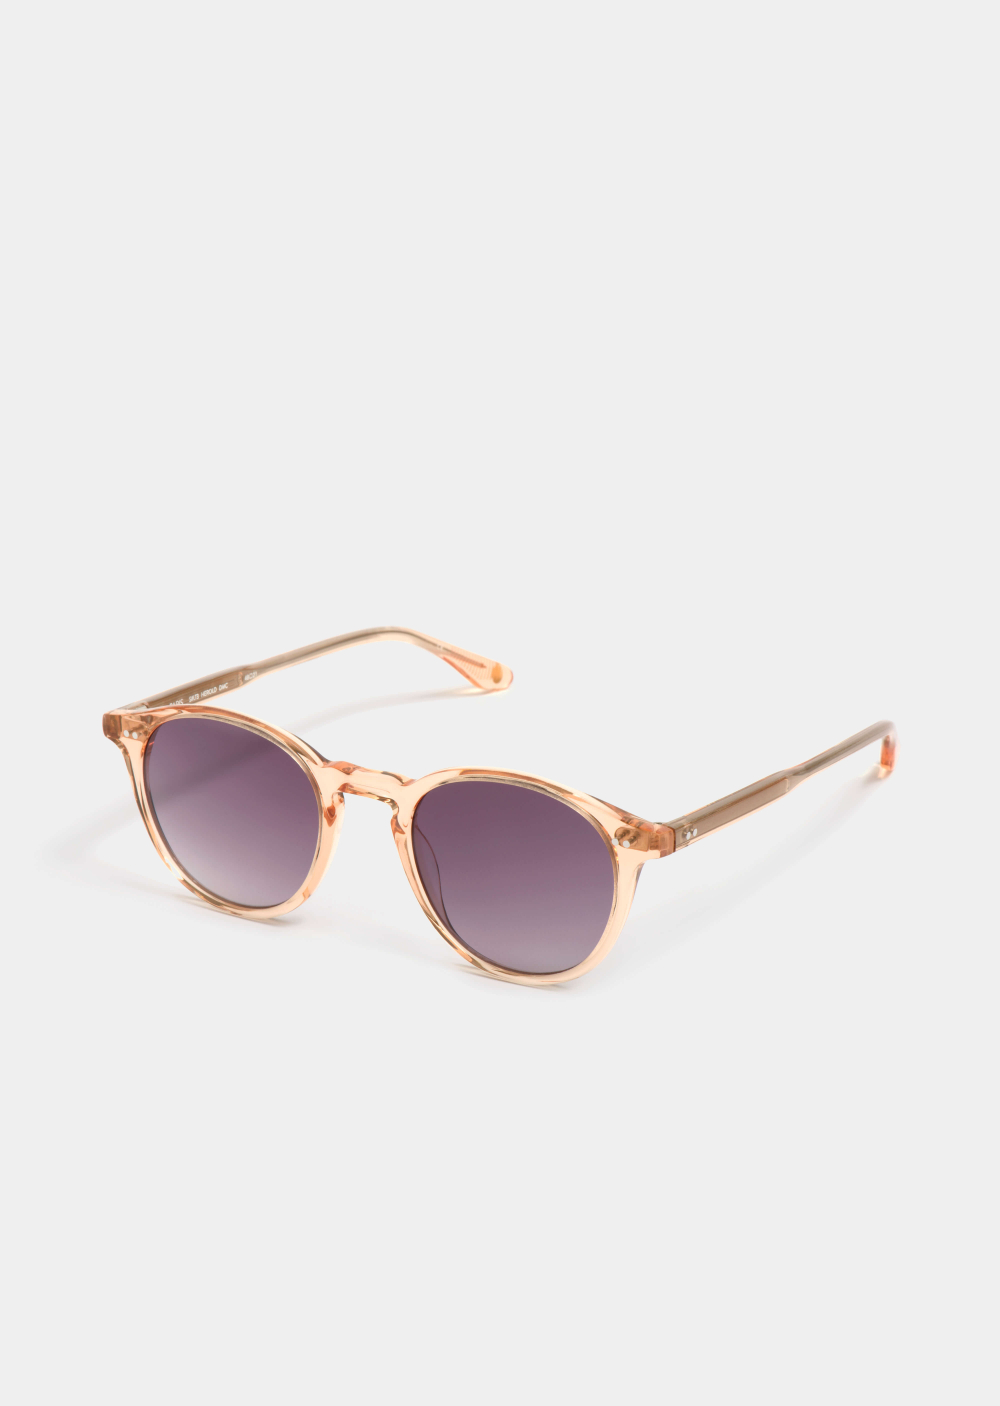 PETER AND MAY -  - LT3 Herold RX demoiselle champagne